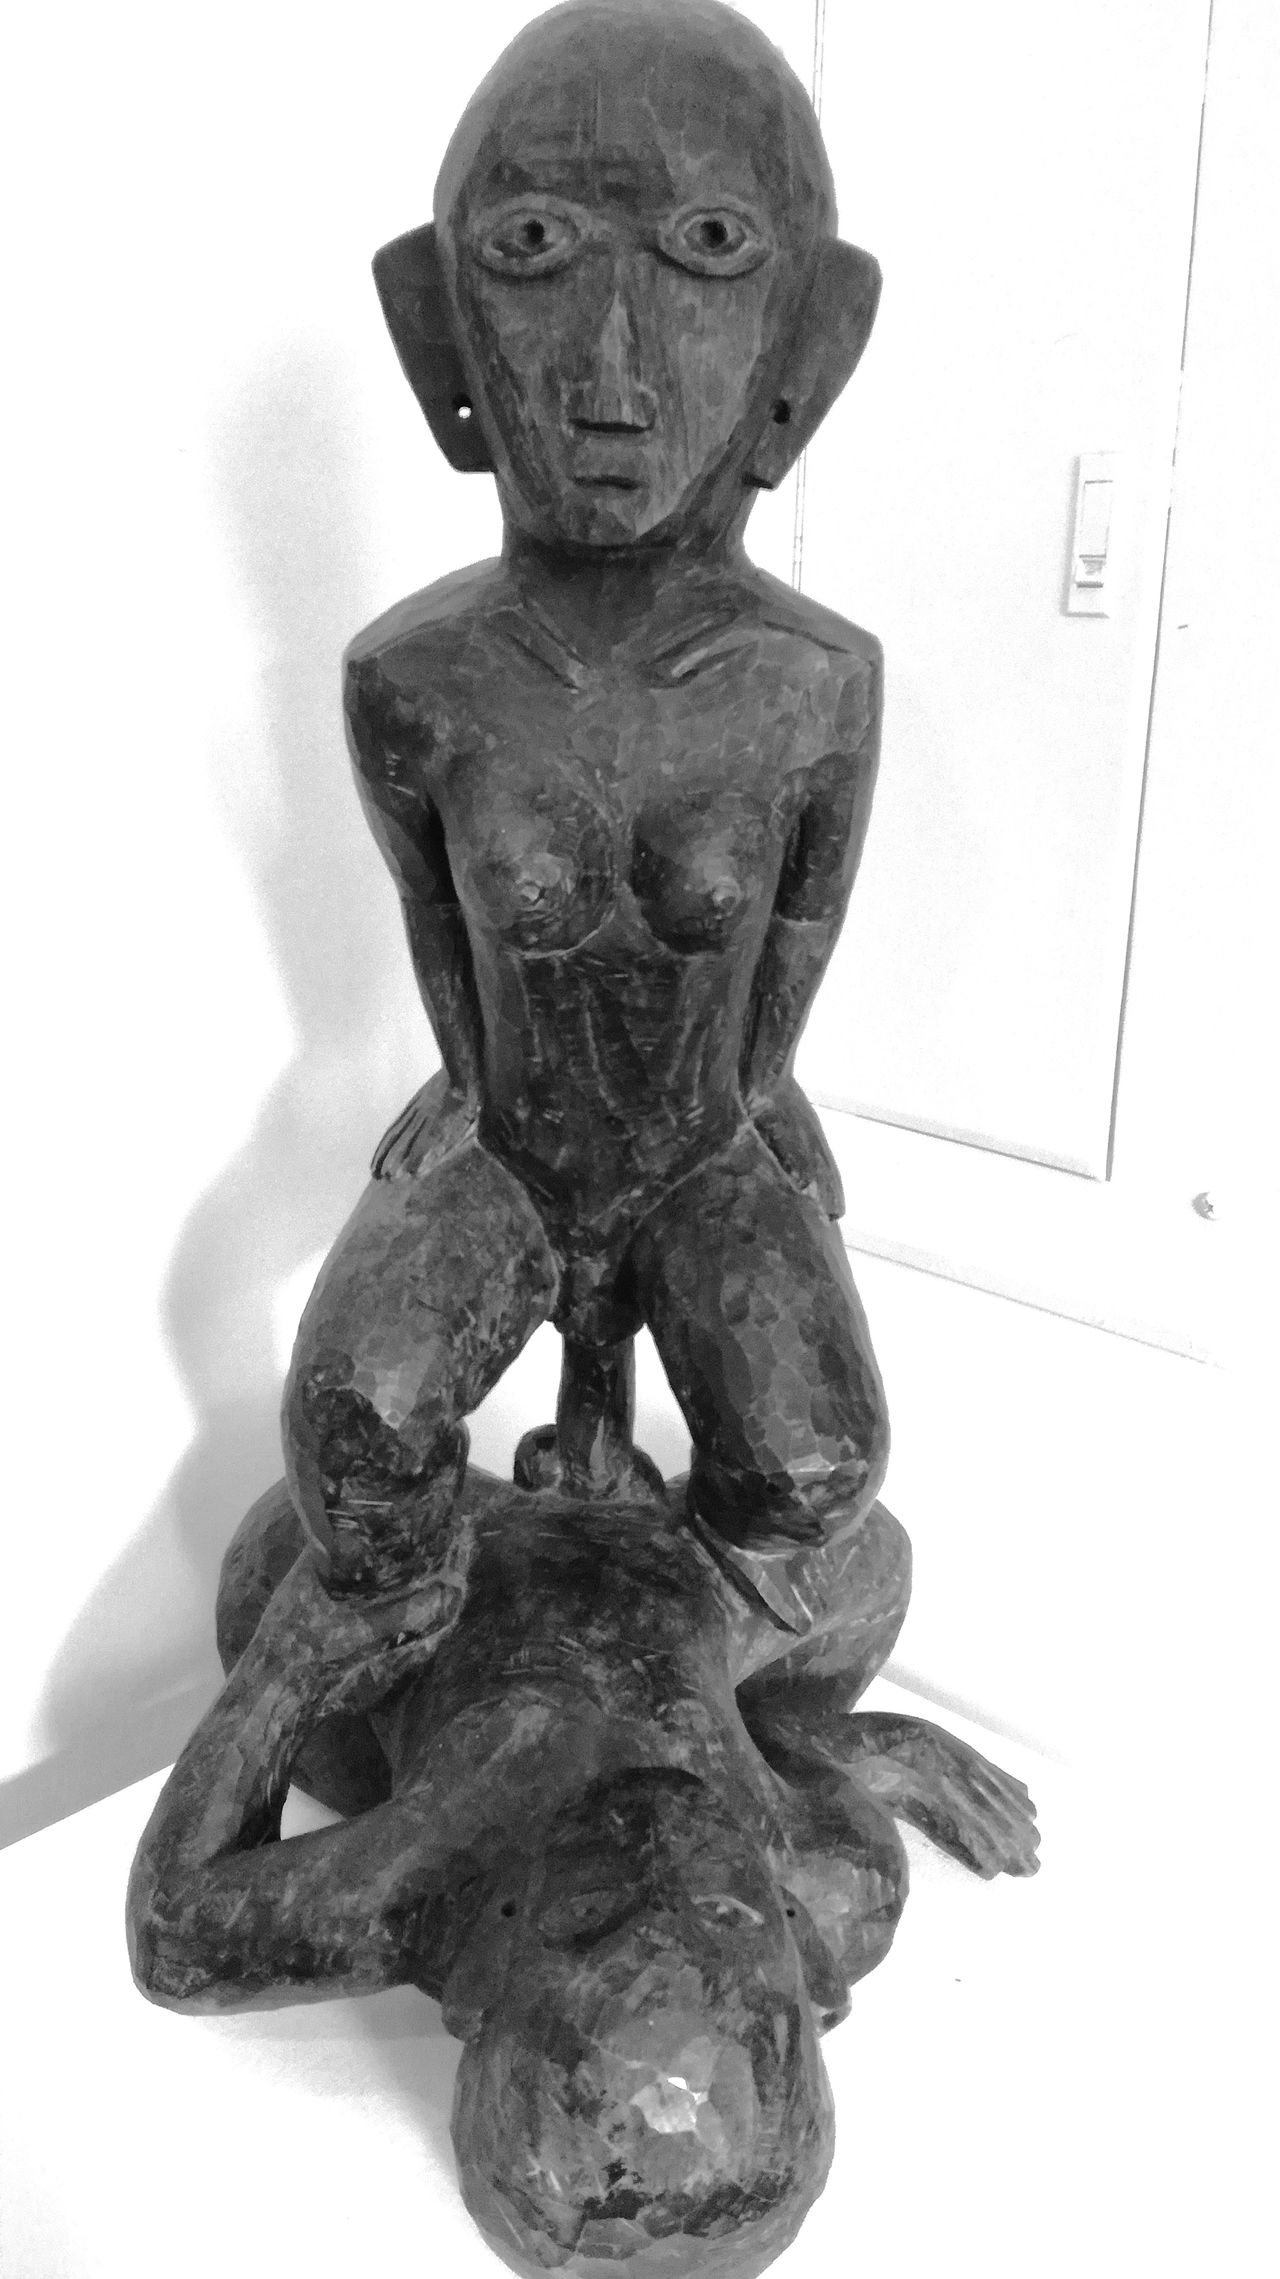 Erotica 2 Statue Erotic_art Belief And Faith Eyeem Philippines Adults Only Vacation Destination Black And White Collection  Black & White Photography EyeEm Travel Photography Sculpture Arts Culture And Entertainment Statue Culture And Tradition Human Body Part Young Adult Lightroom Sitting